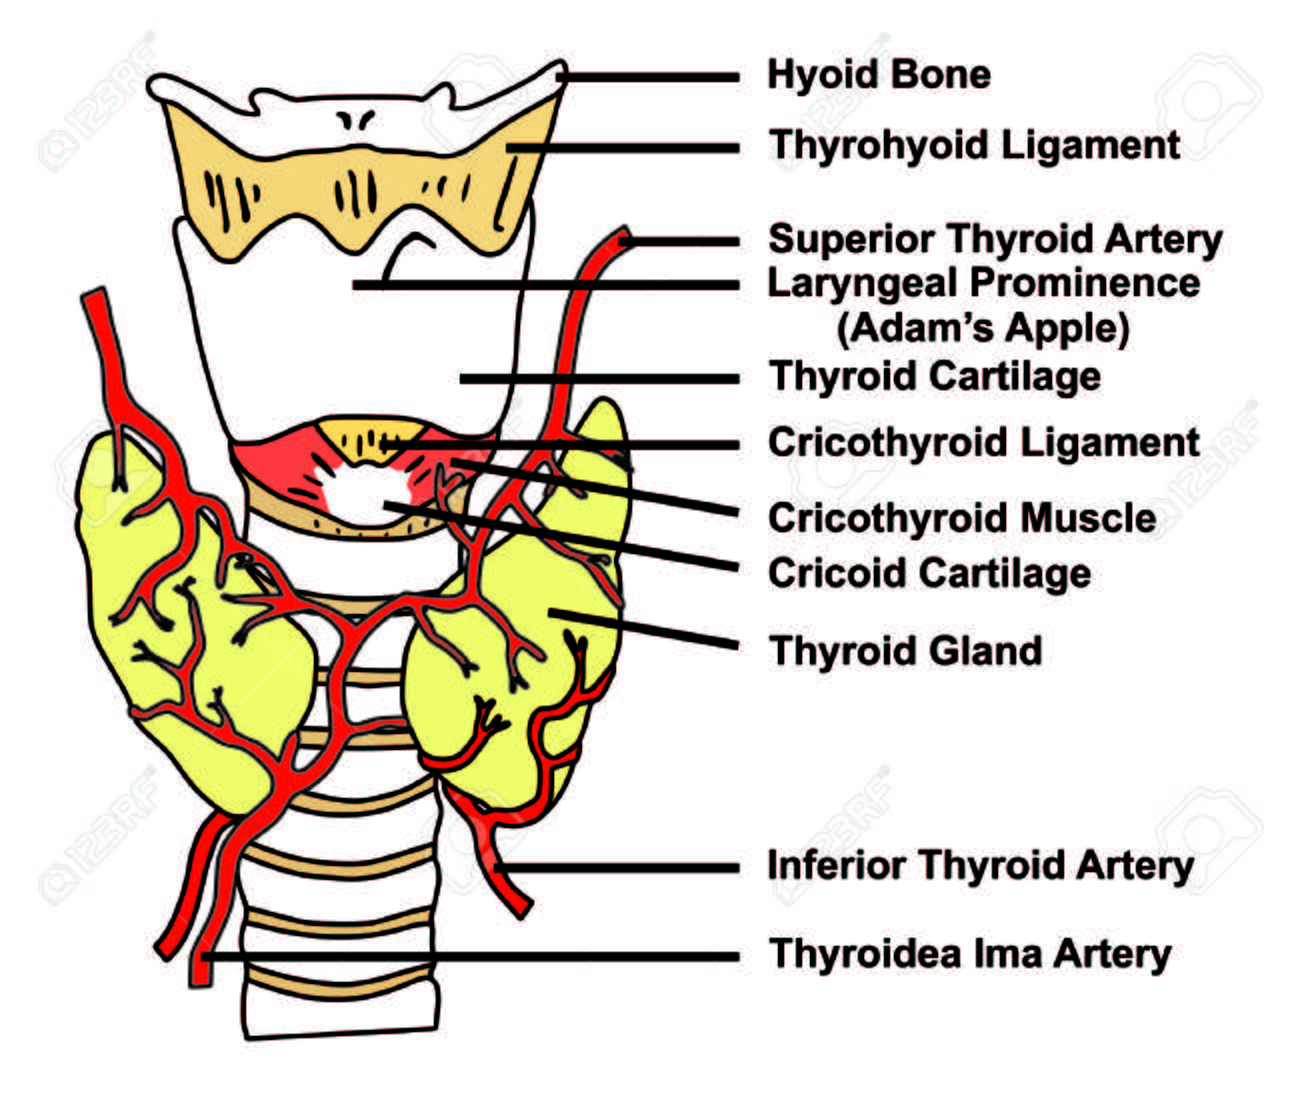 Thyroid Gland Anatomical Structure Arteries Supply Diagram